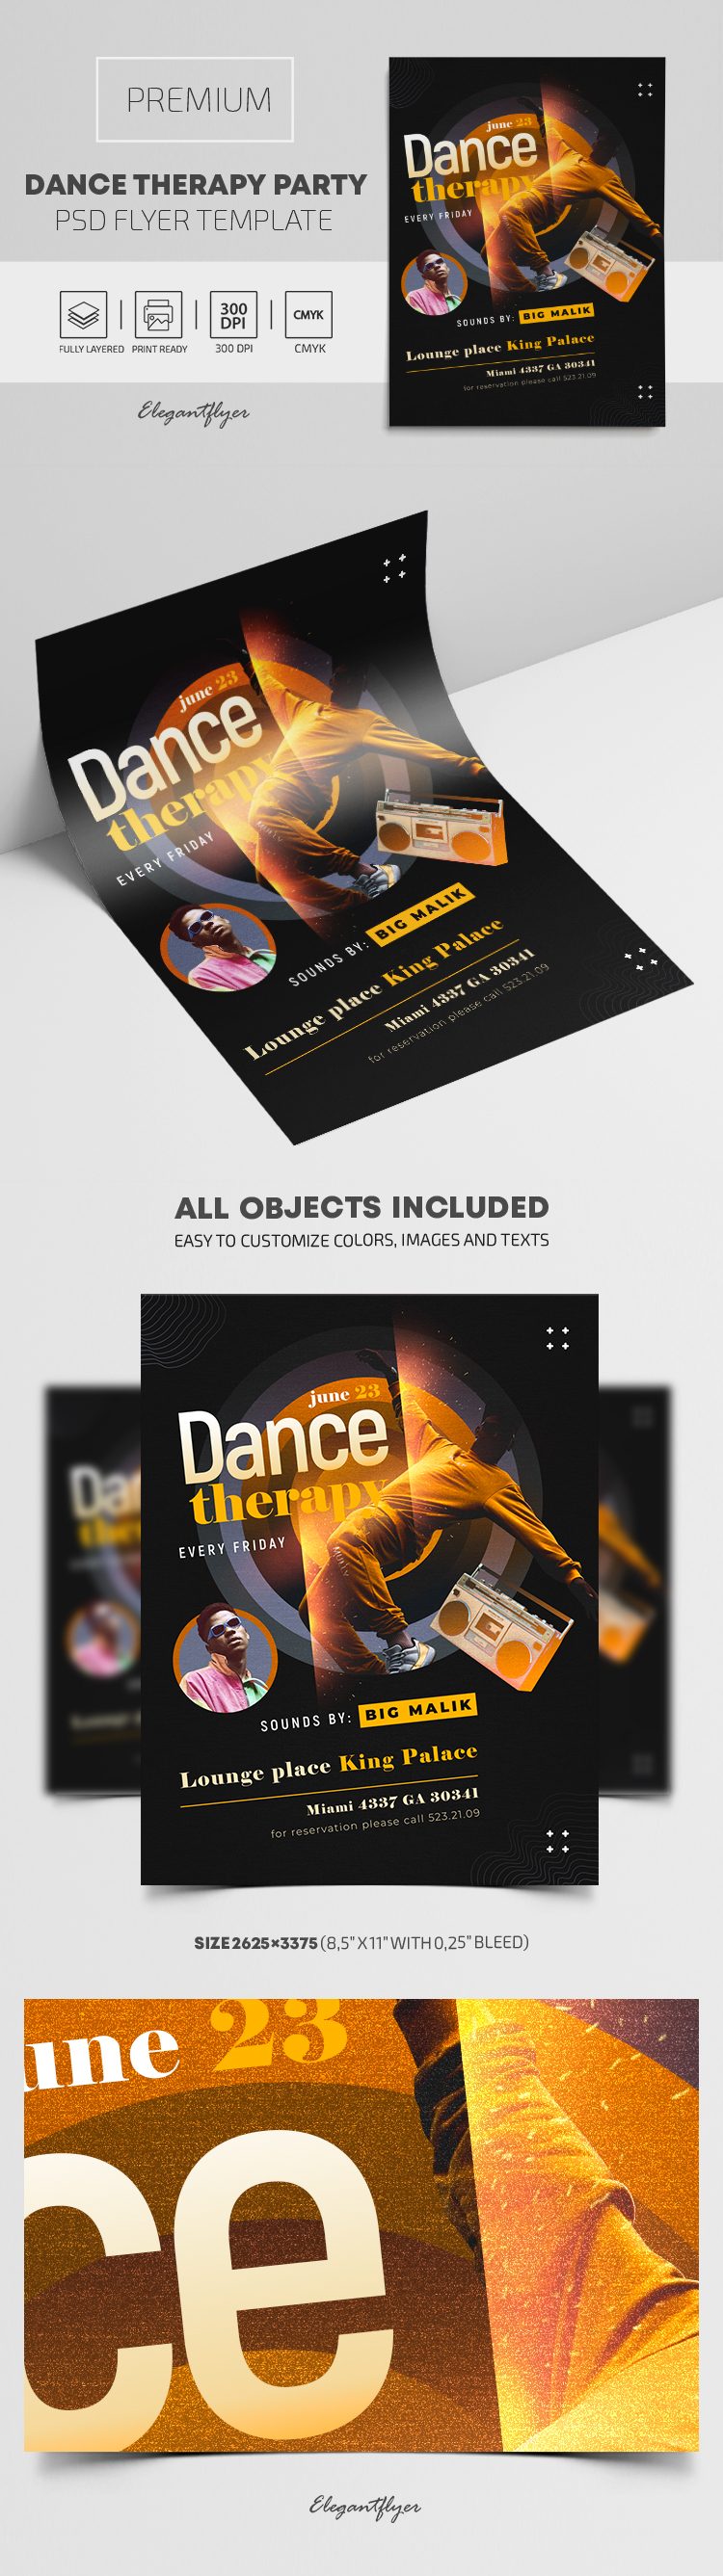 Dance Therapy Party – Premium PSD Flyer Template